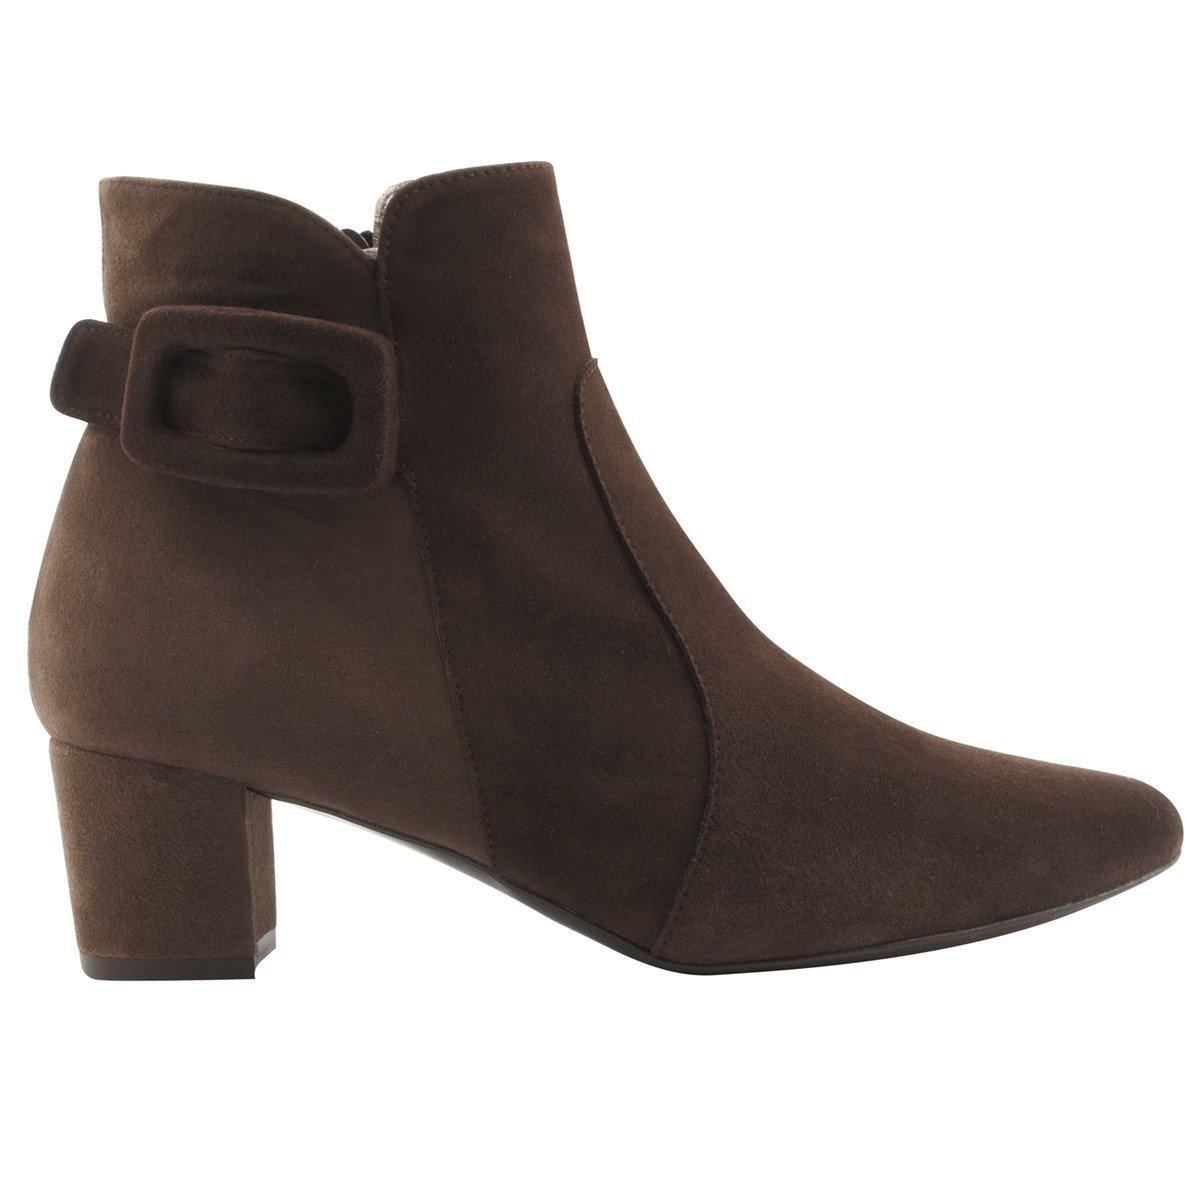 Exclusif Exclusif 19992 Paris Bottines Anouck B00ZP324CO Taupe cc352b5 - reprogrammed.space